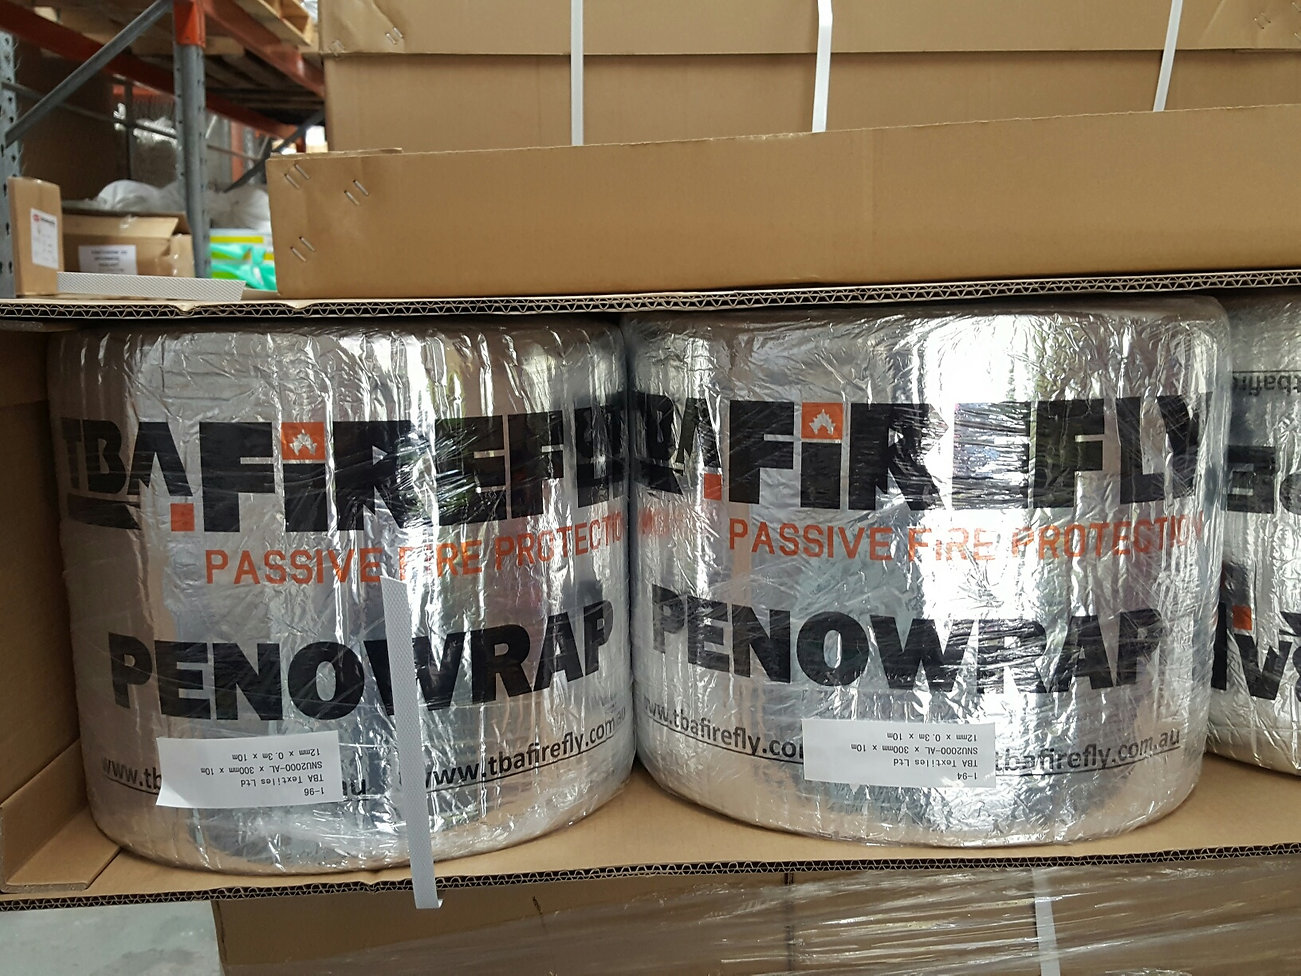 https://www.firecertify.com/| Newstead | Fire Protection Penowrap